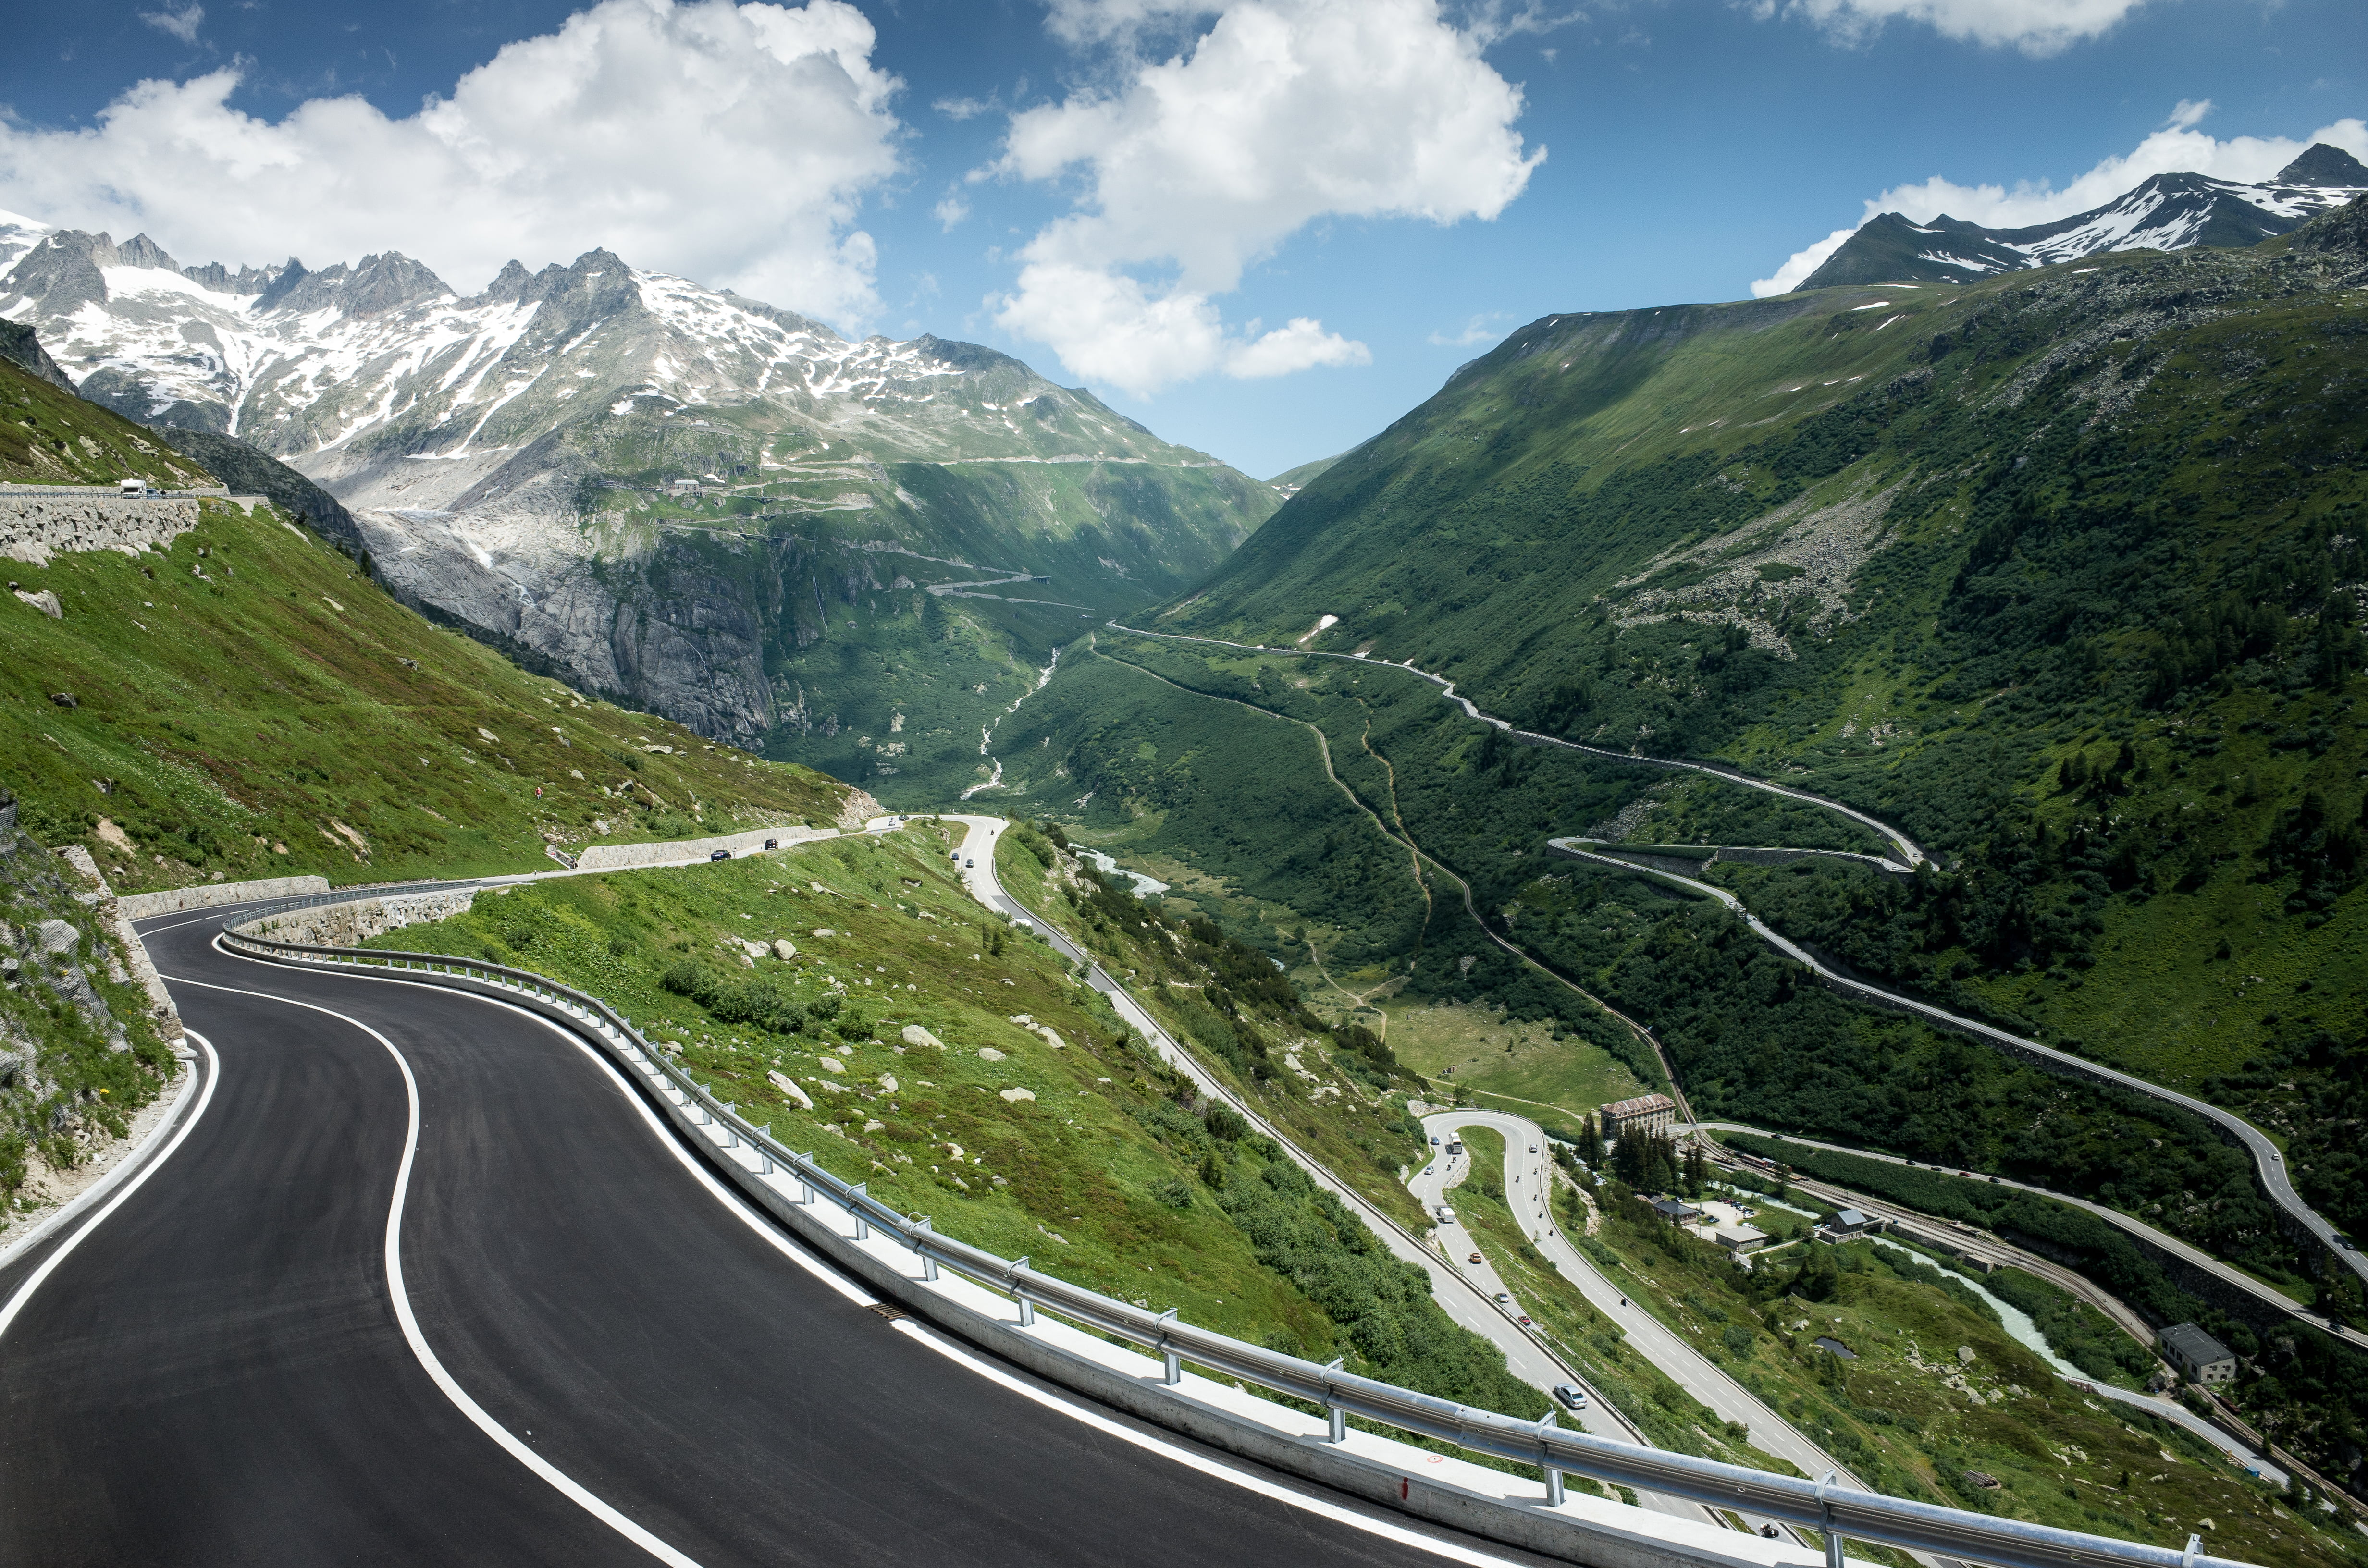 Gray concrete road and mountain HD wallpaper | Wallpaper Flare